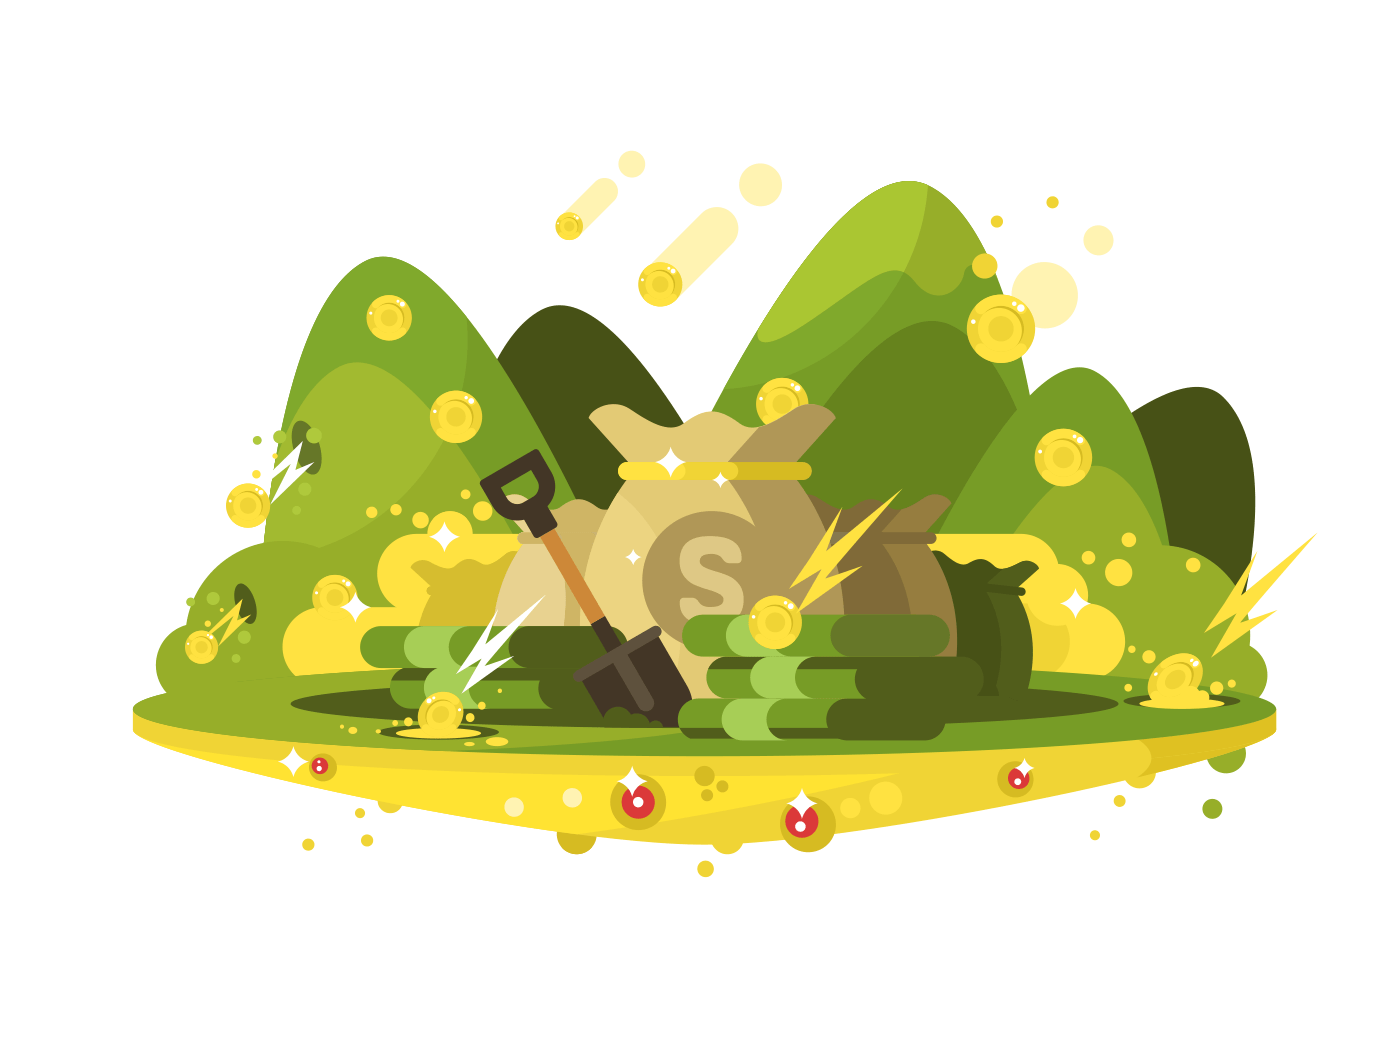 Treasure, a bag of gold coins illustration